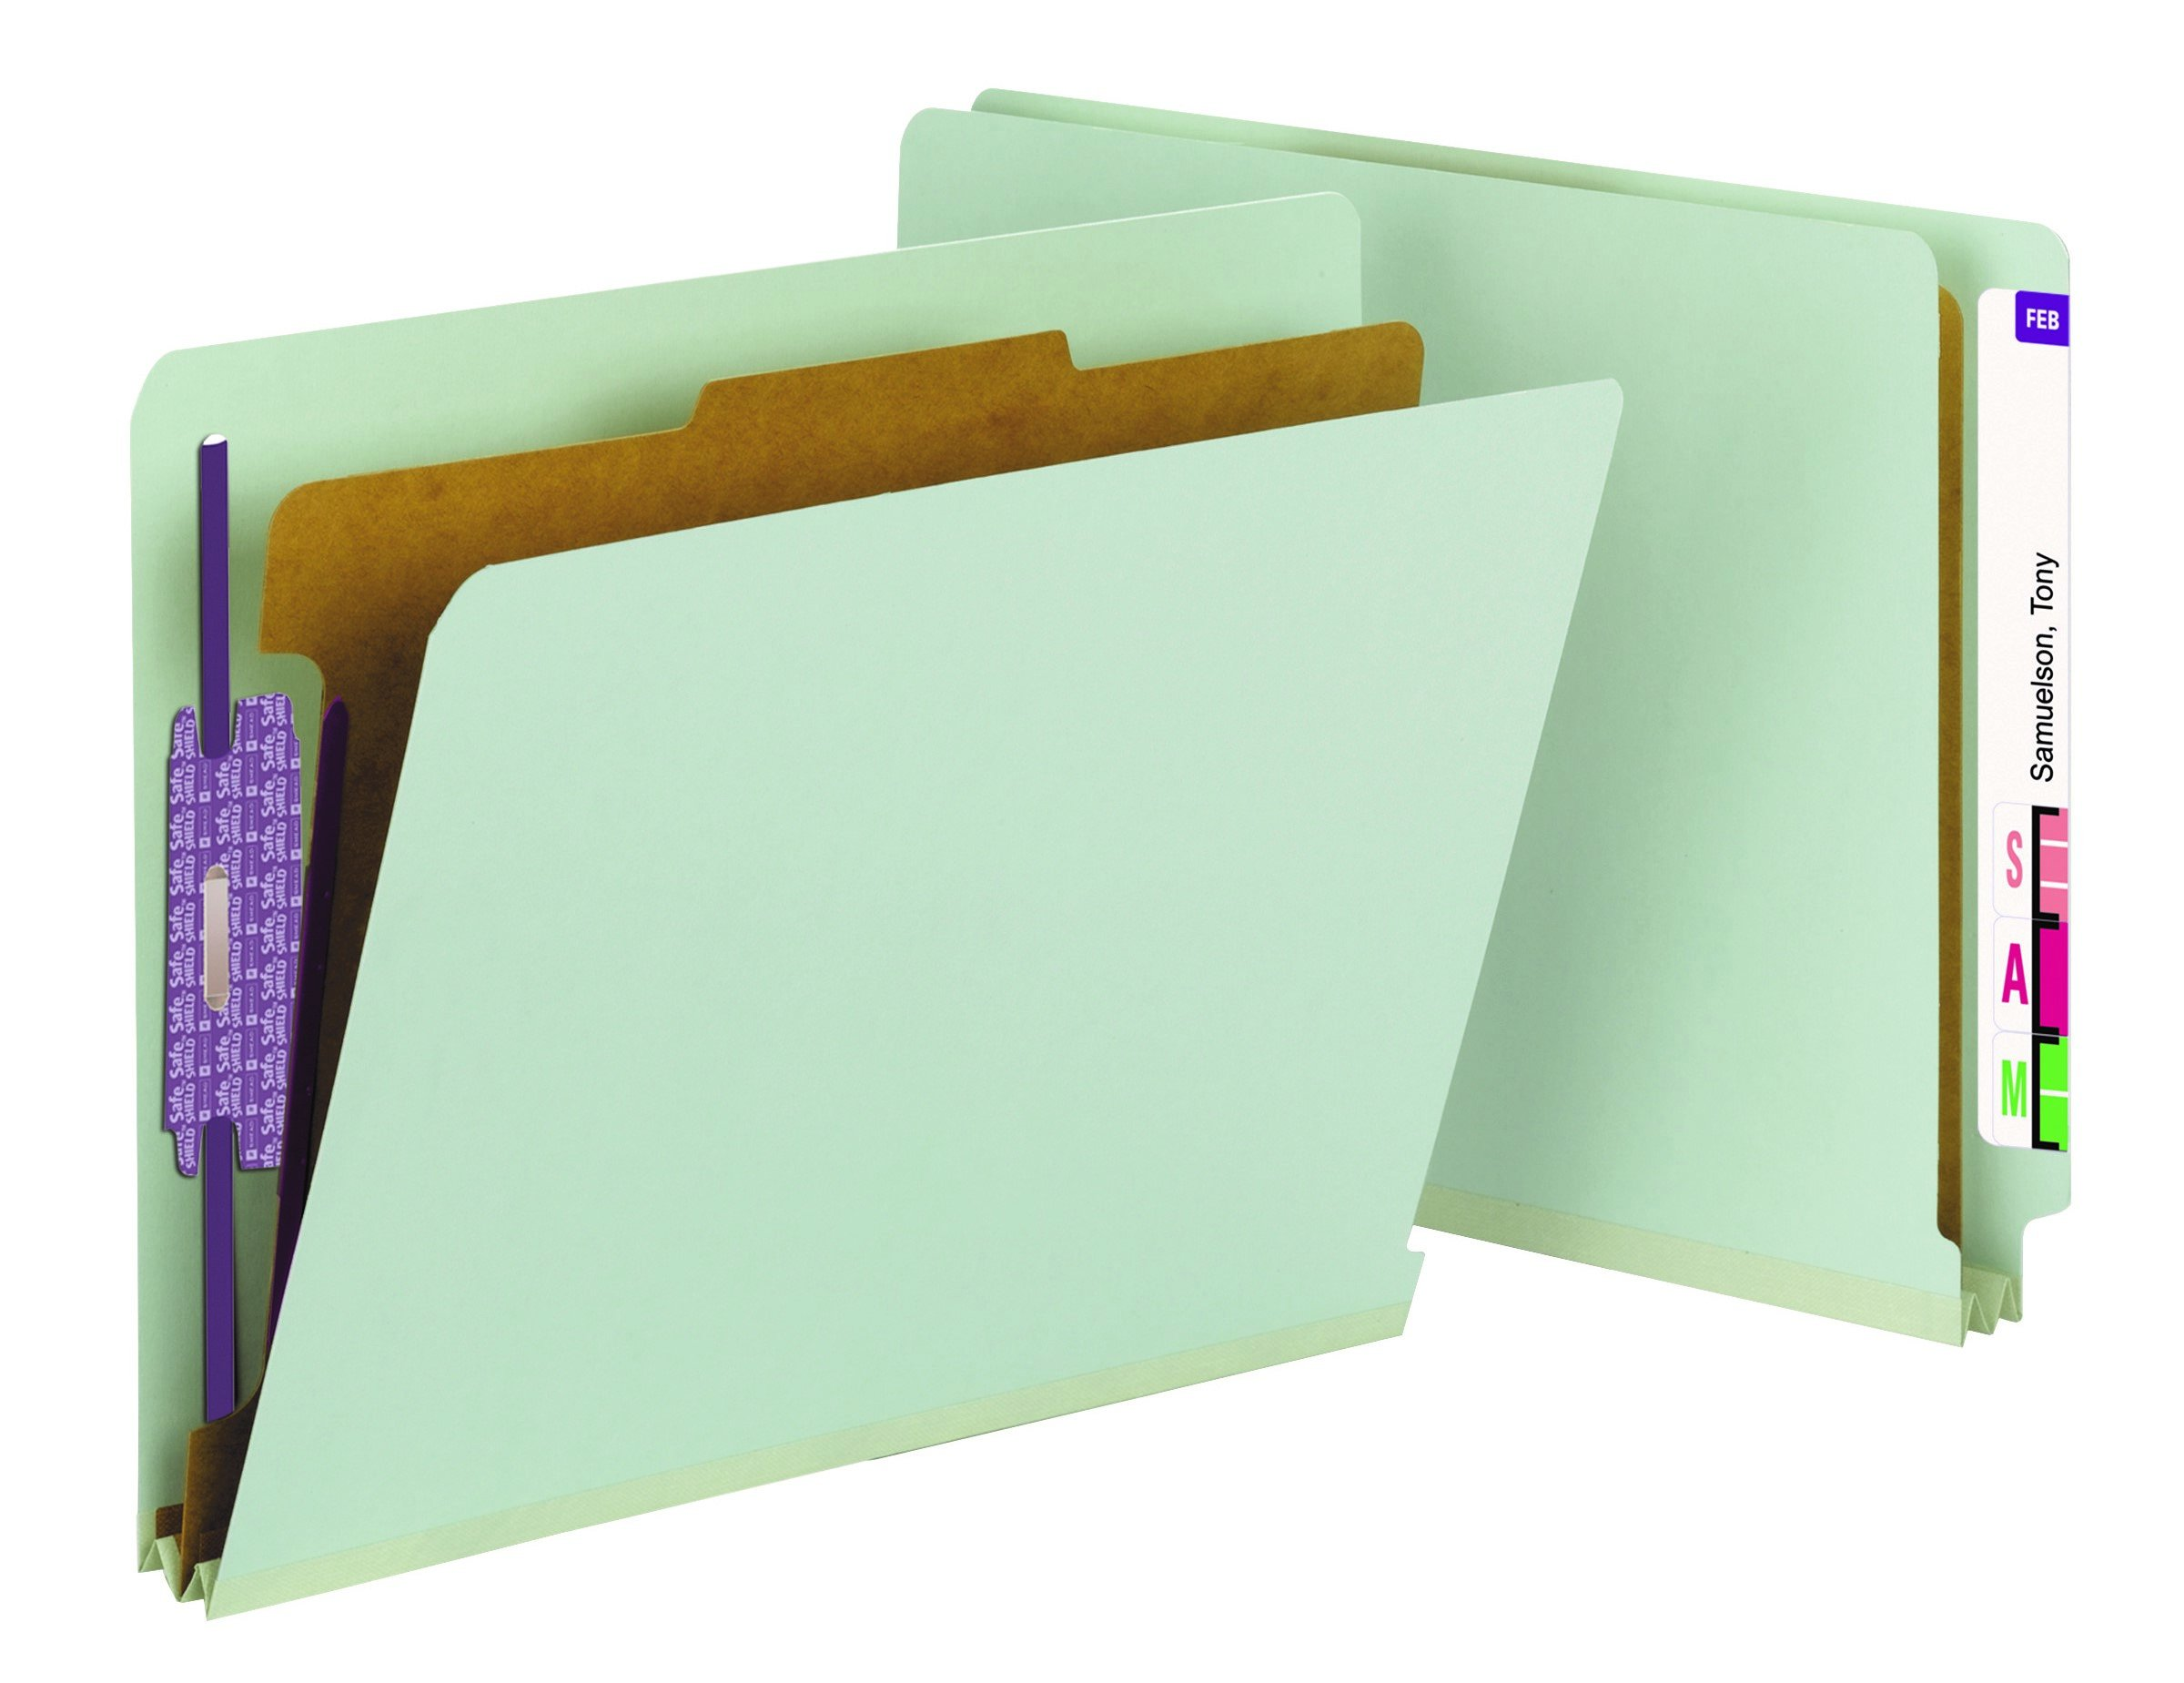 Smead End Tab Pressboard Classification File Folder with SafeSHIELD Fasteners, 1 Divider, 2'' Expansion, Letter Size, Gray/Green, 10 per Box  (26800)